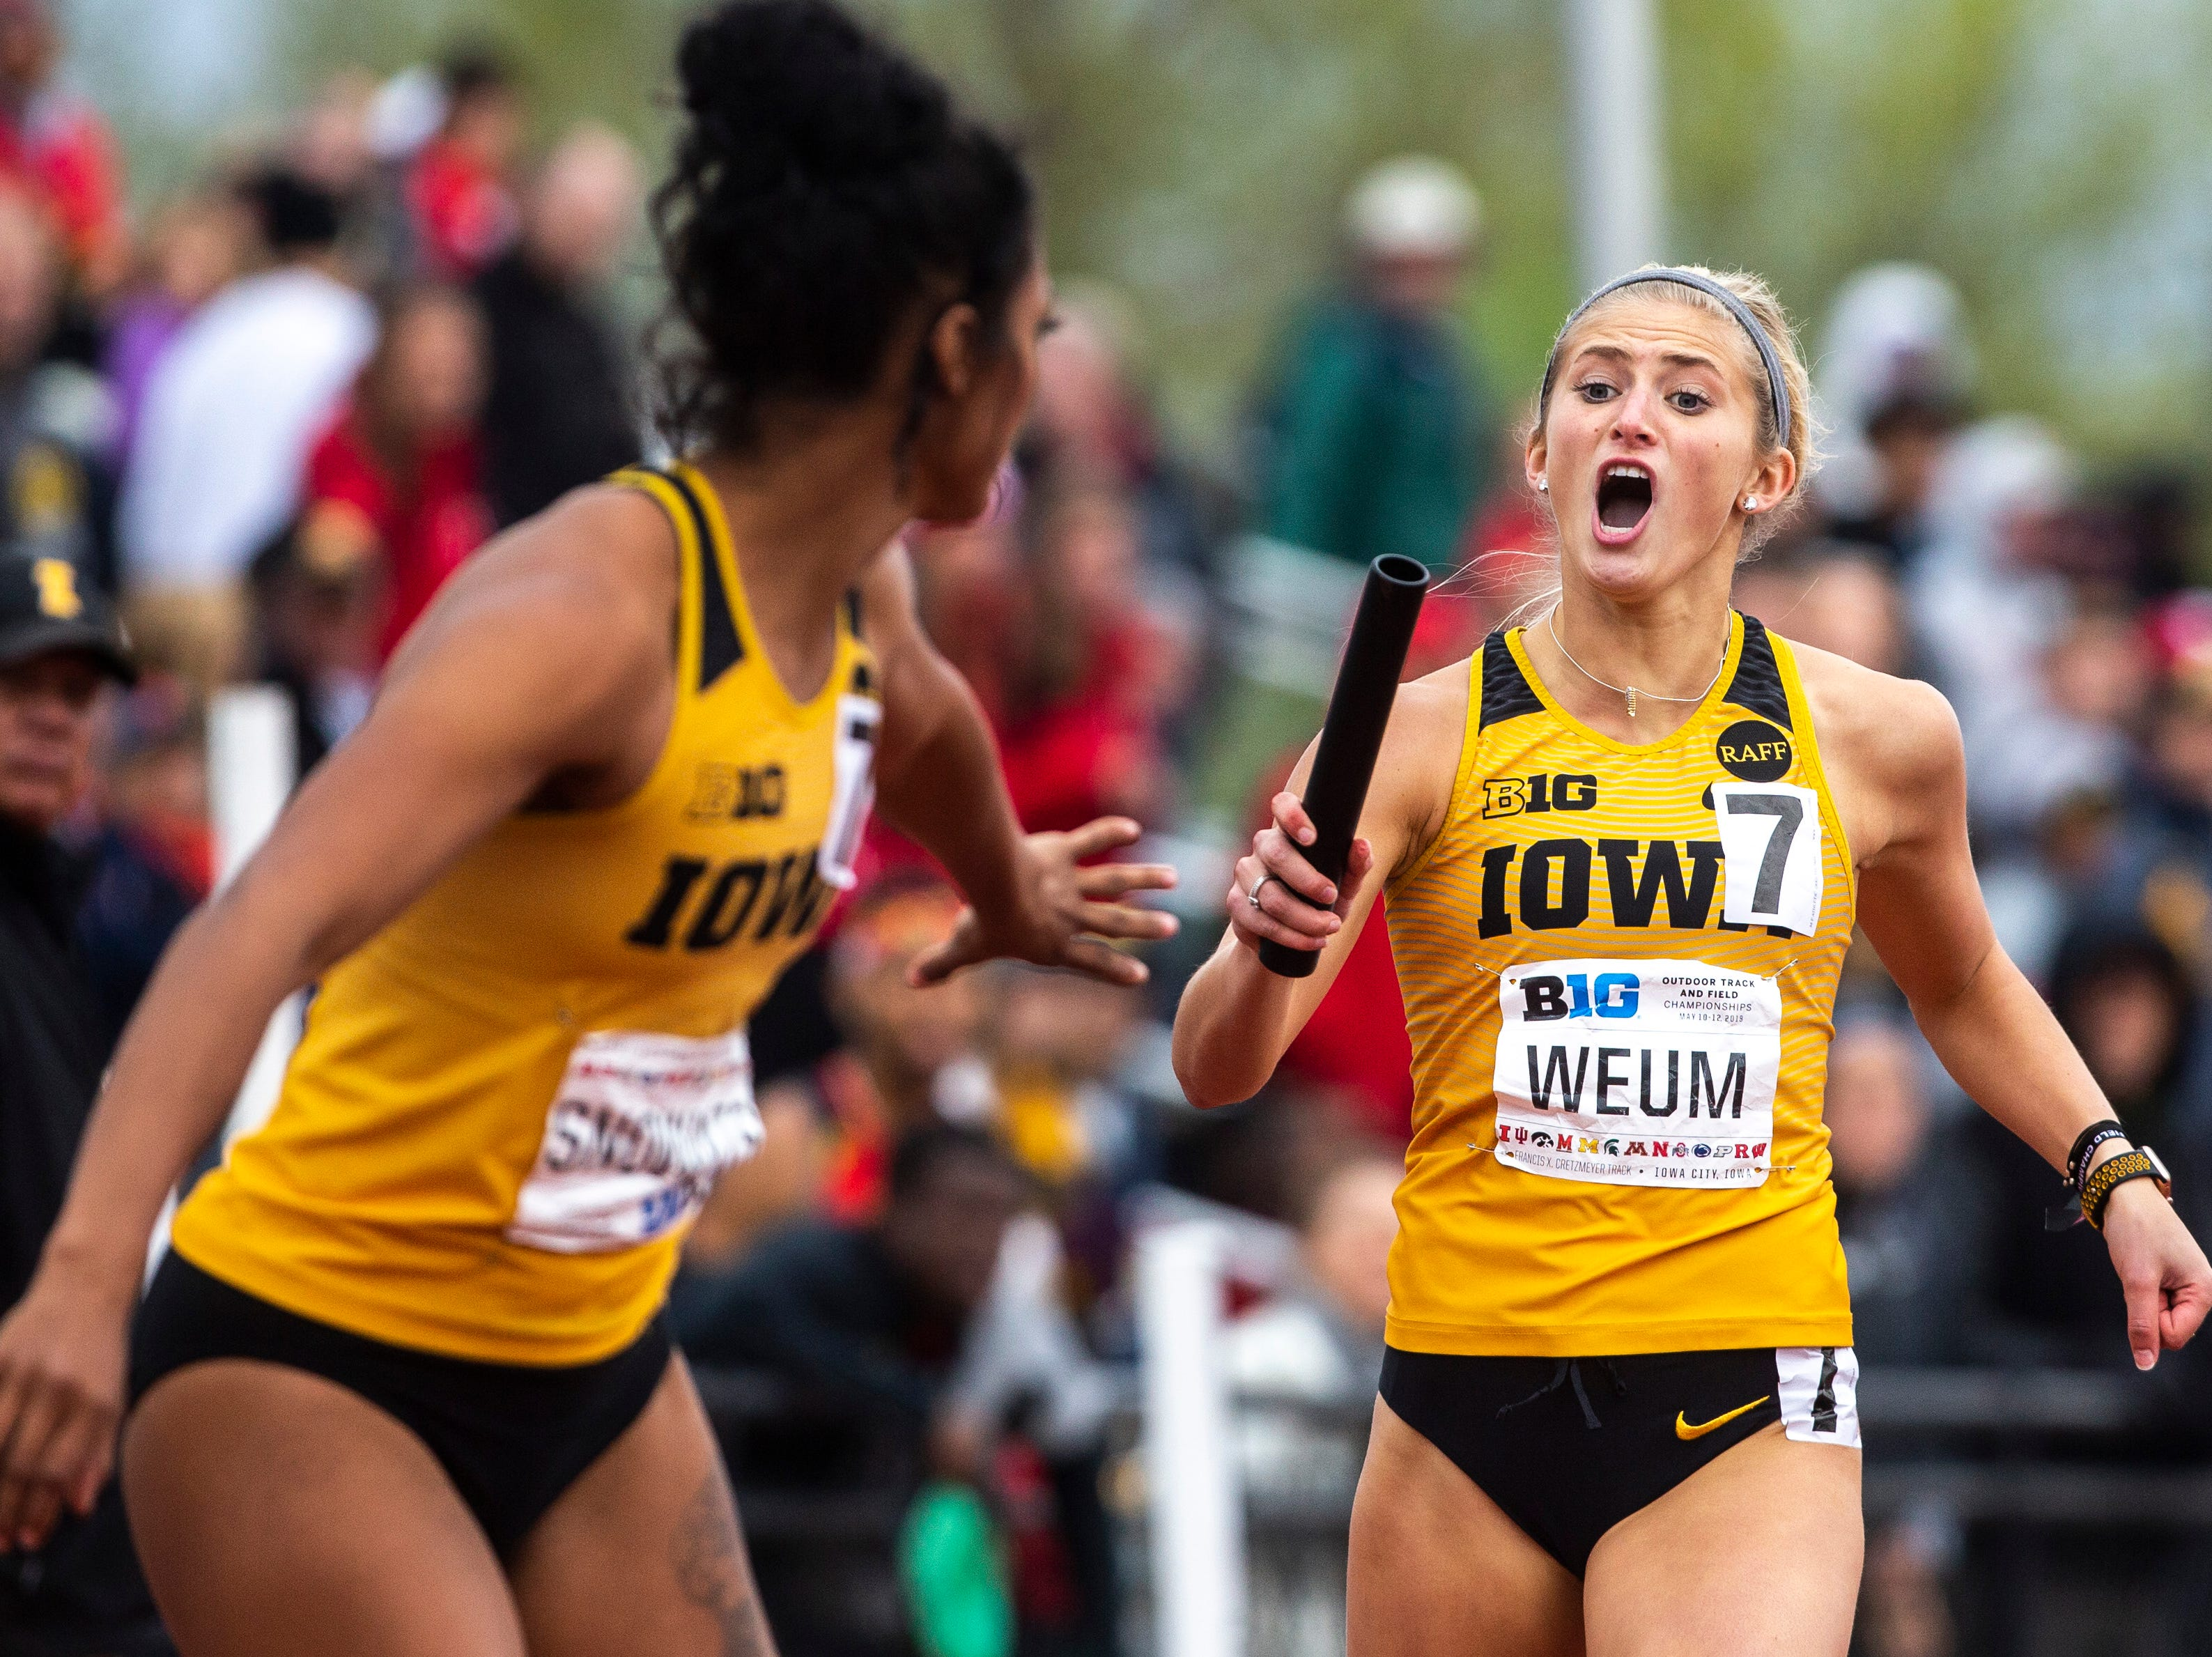 Iowa's Aly Weum shouts to a teammate before a handoff during the final day of Big Ten track and field outdoor championships, Sunday, May 12, 2019, at Francis X. Cretzmeyer Track on the University of Iowa campus in Iowa City, Iowa.